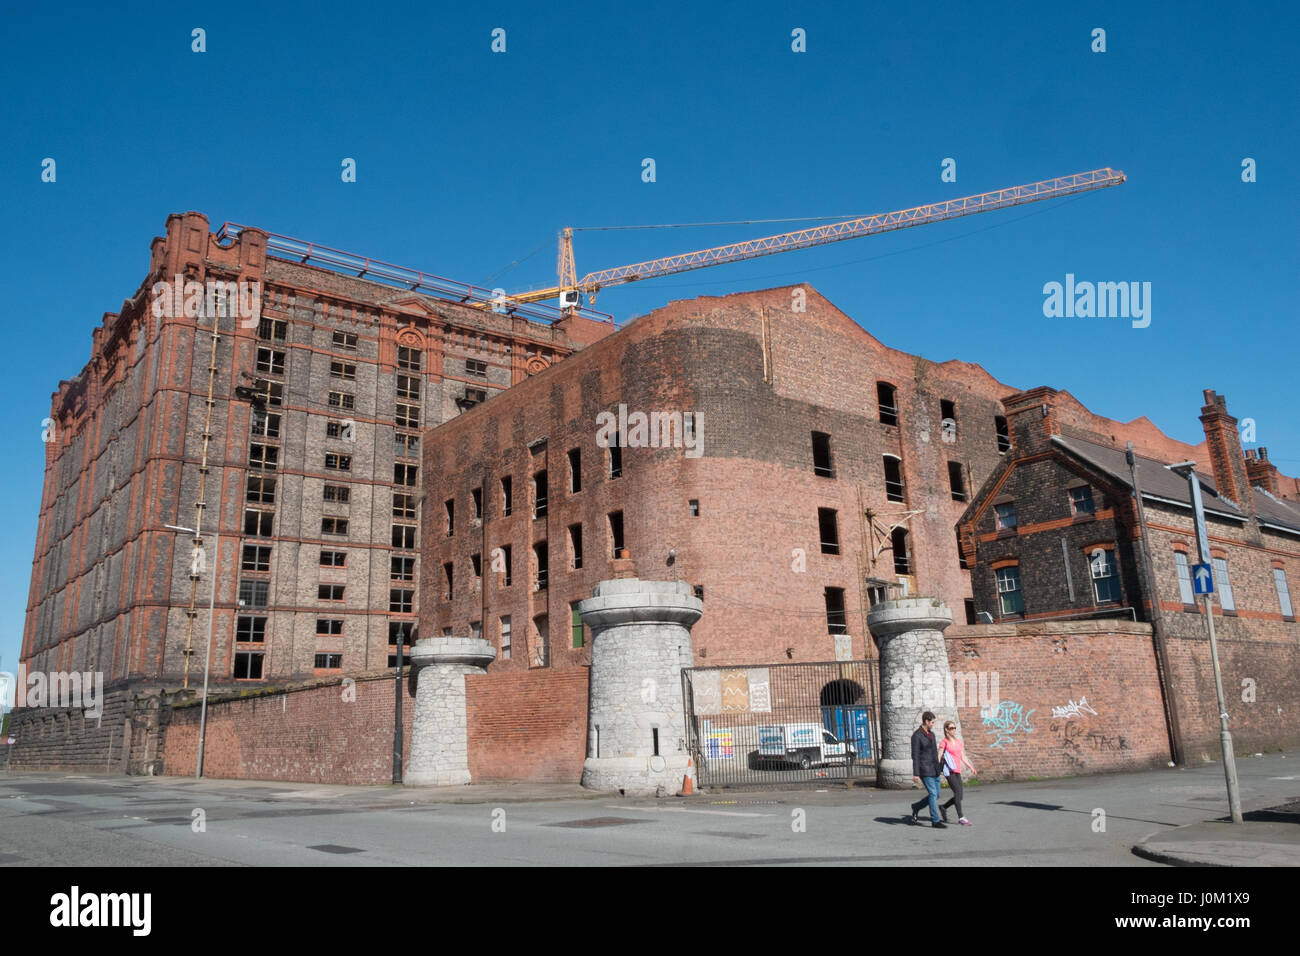 Stanley Dock,brick,warehouse,world's largest,brick,building,Liverpool,Merseyside,England,UNESCO,World Heritage City,City,North,England,English,UK. Stock Photo